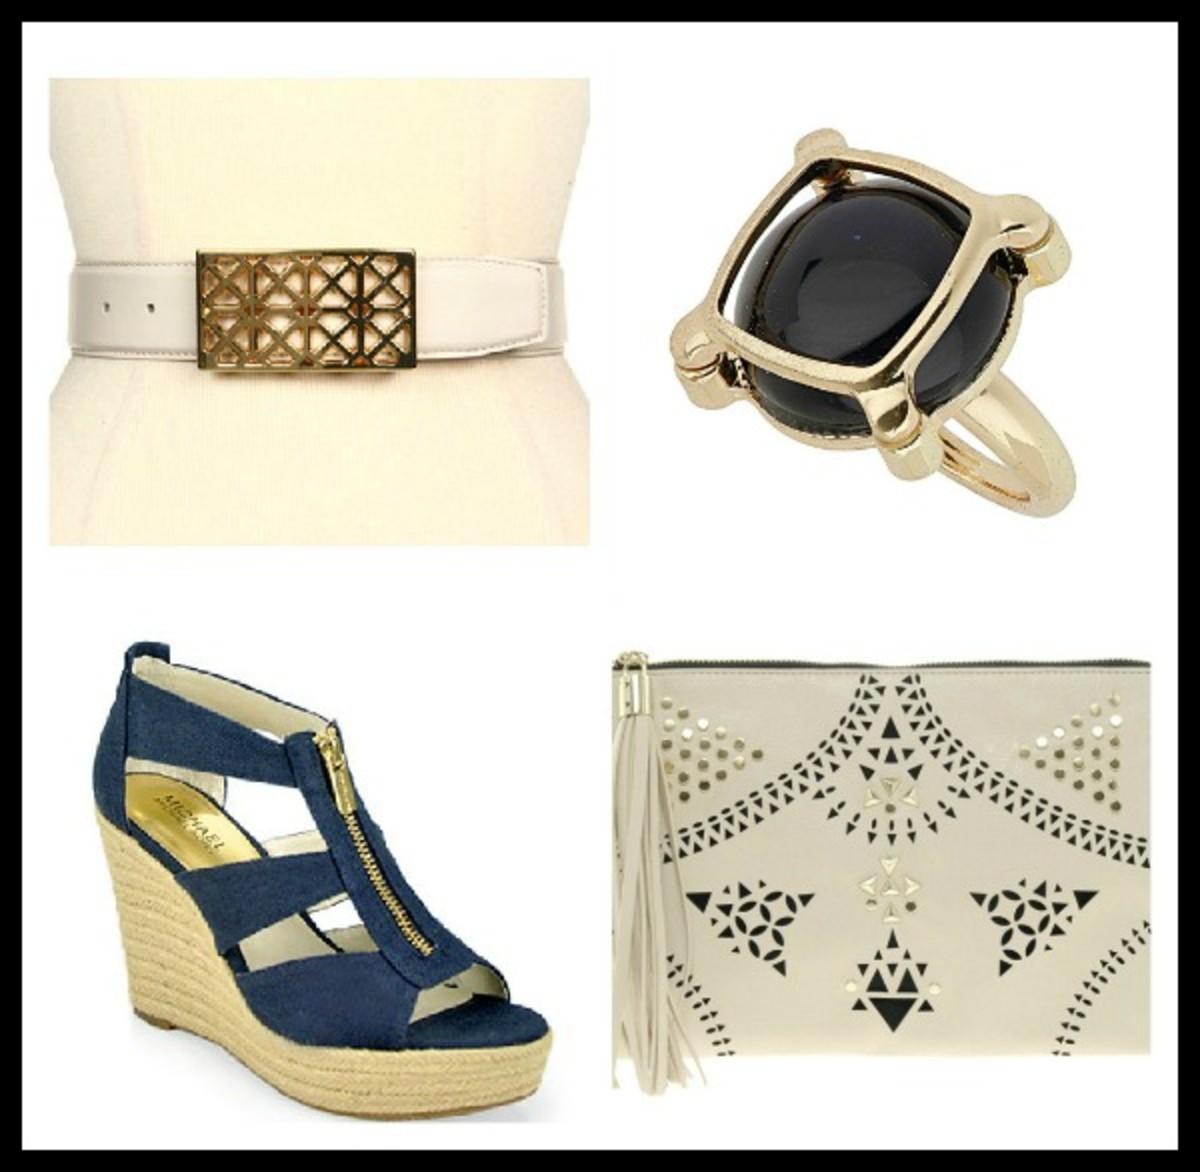 cut-out, cut-out clutch, cocktail ring, cut-out belt, espadrille wedge